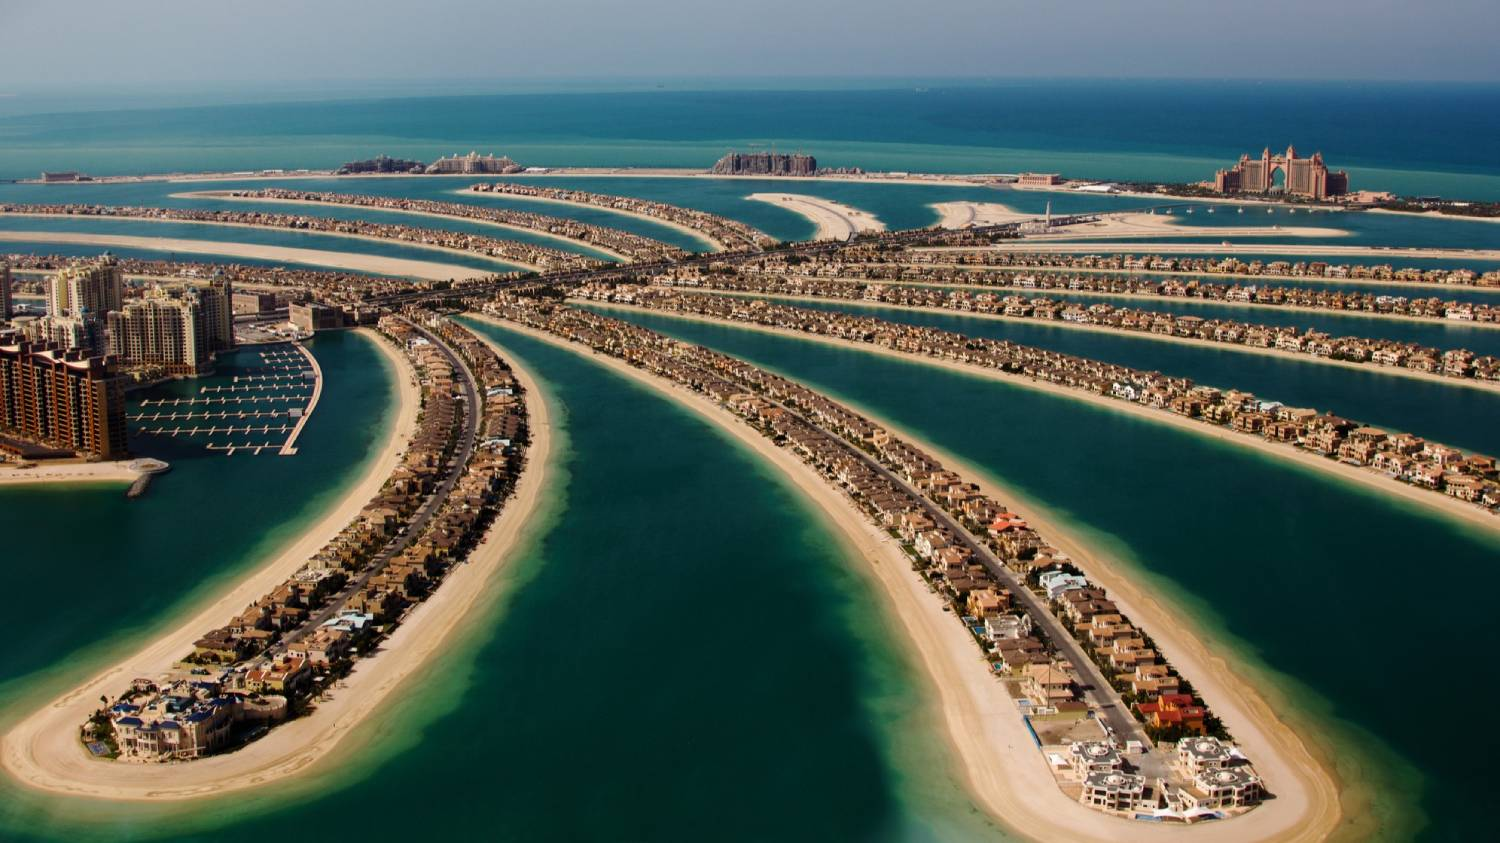 Palm Islands & The World - Things To Do In Dubai